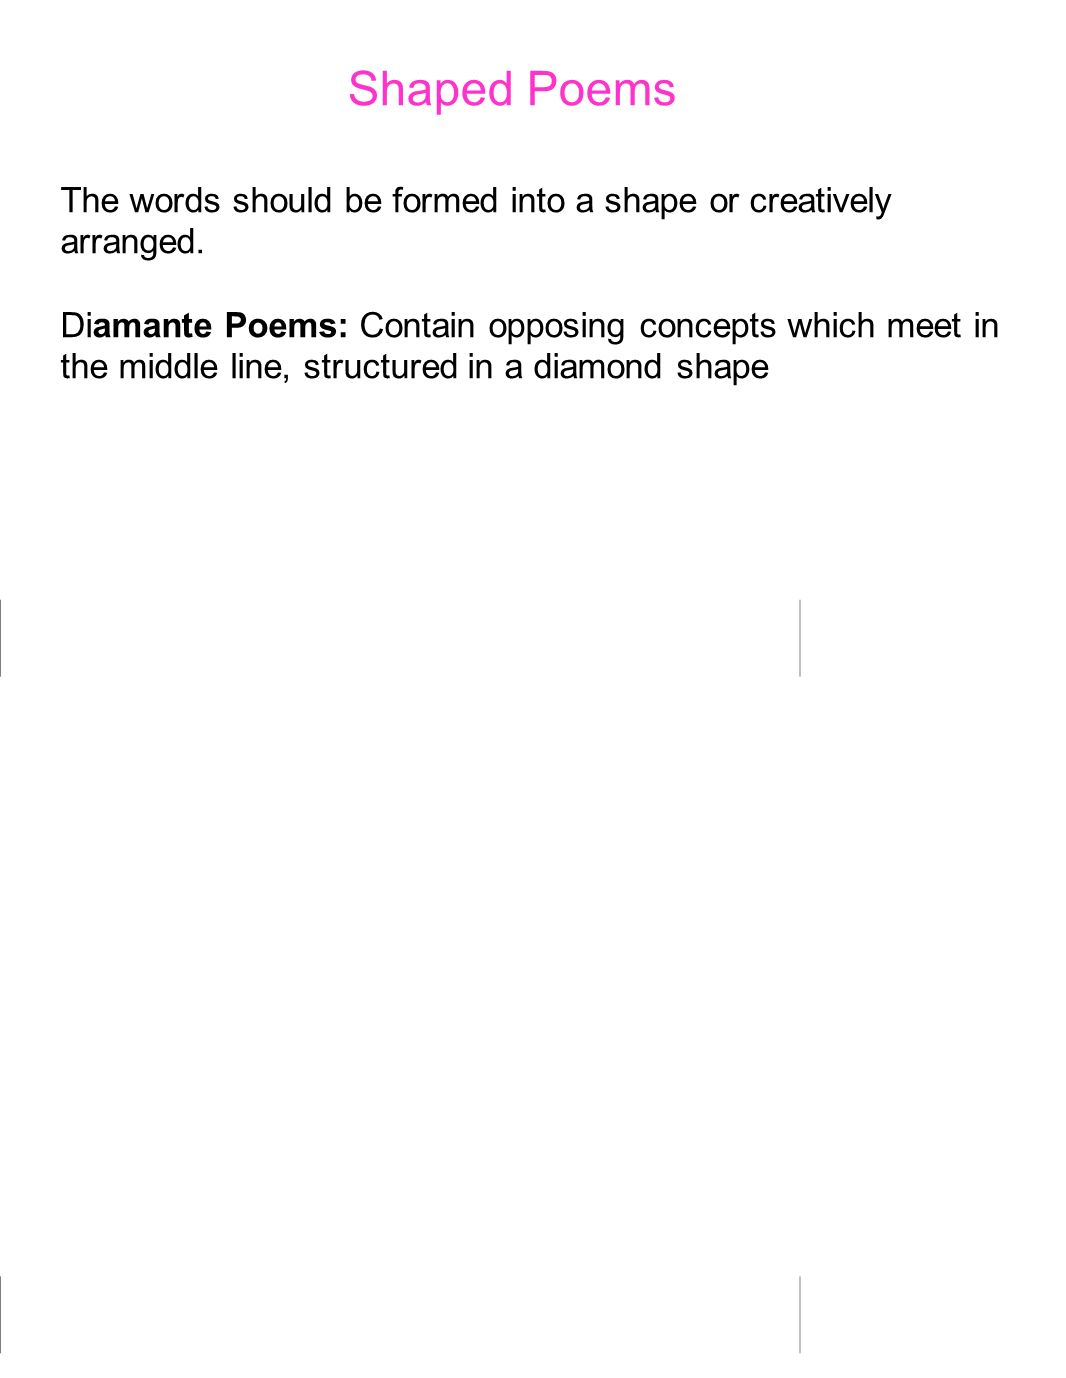 Shaped PoemsThe words should be formed into a shape or creatively arranged.